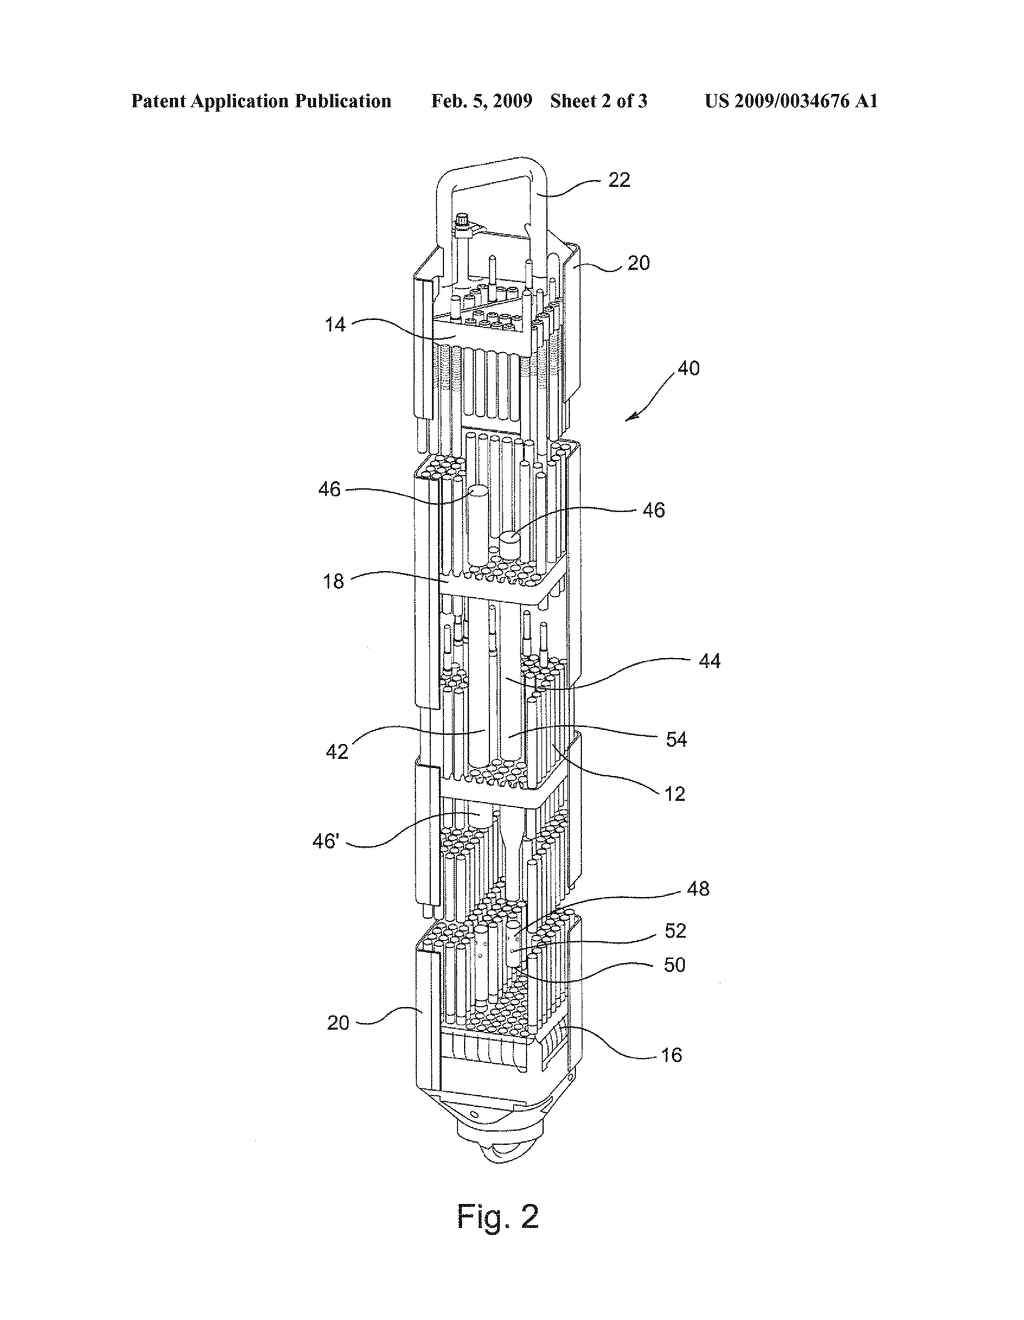 Water Rod For Boiling Nuclear Reactor Fuel Assembly And Method Power Plant Flow Diagram Improving Through The Schematic Image 03